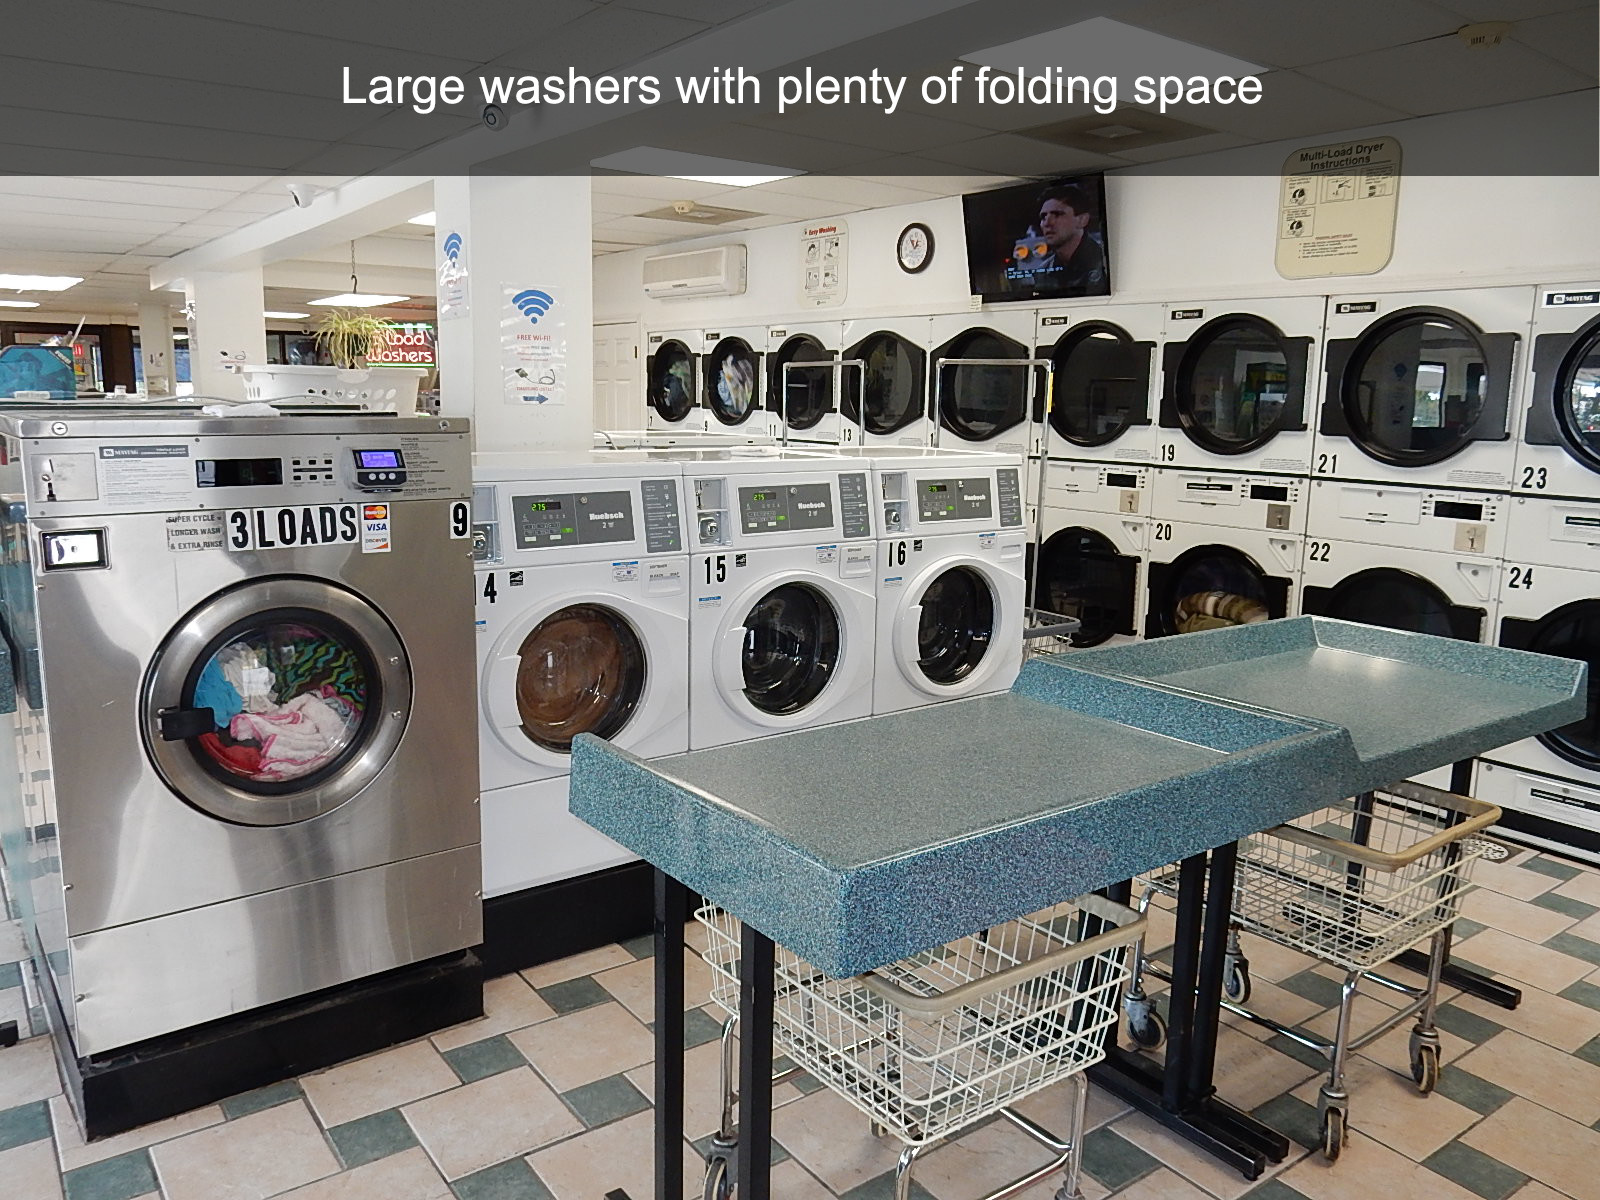 Large washers with plenty of folding space